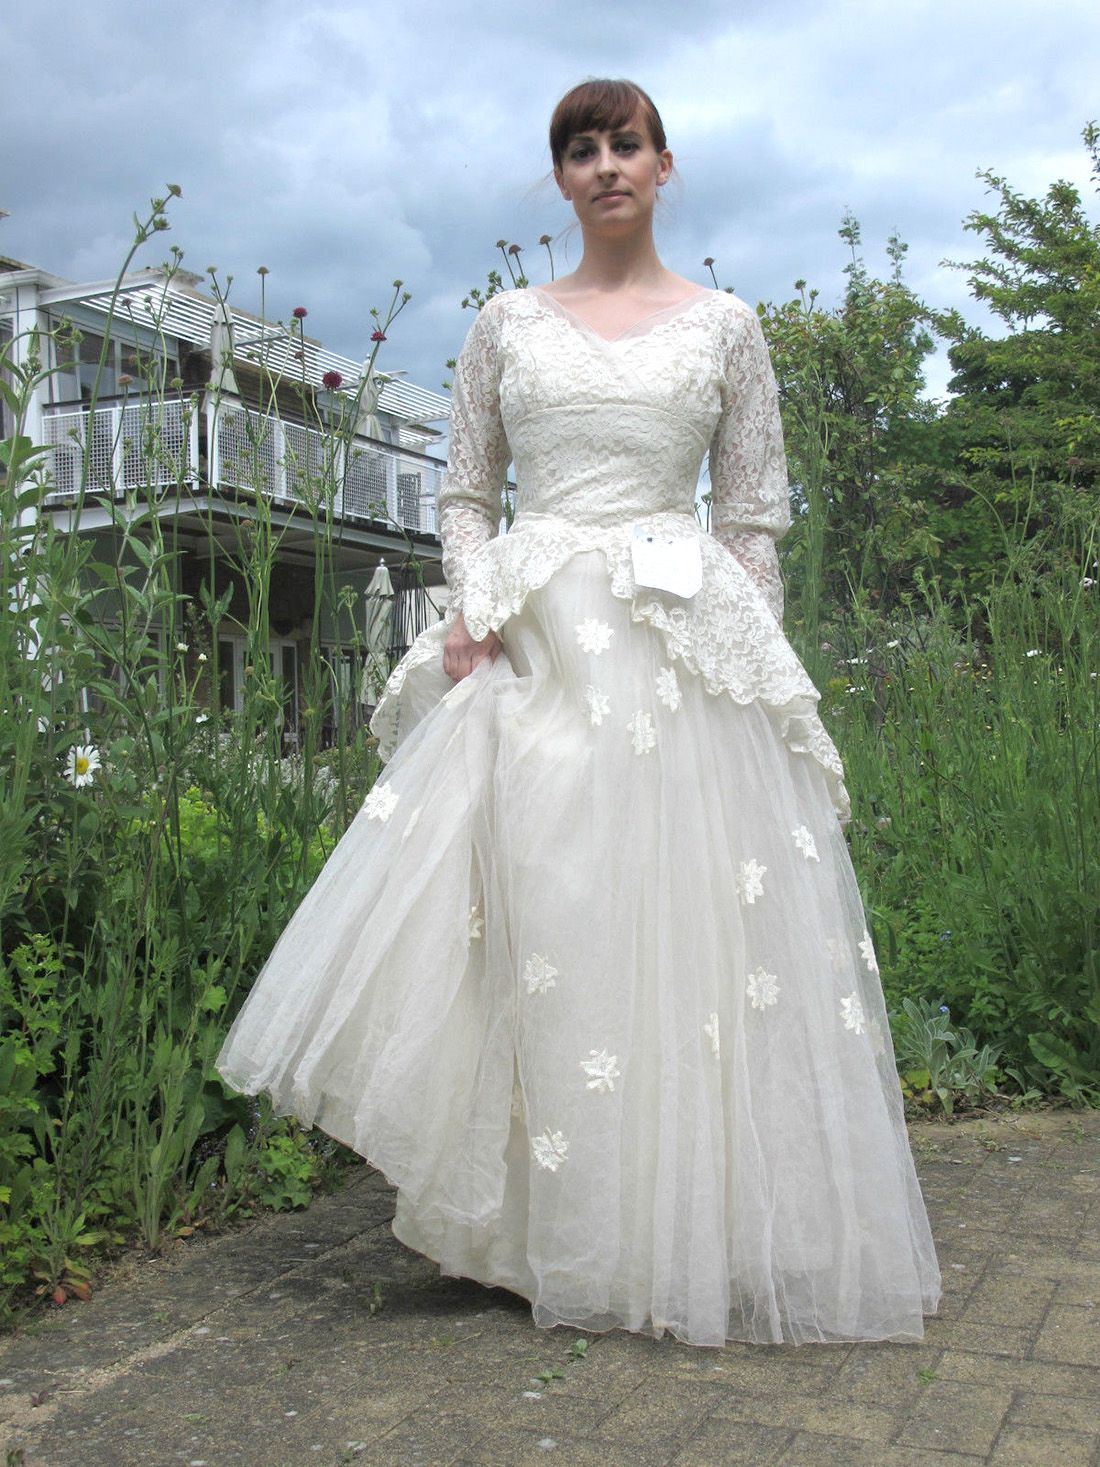 Wedding dress donation  The Story Behind This Wedding Dress Will Make You Believe in Love